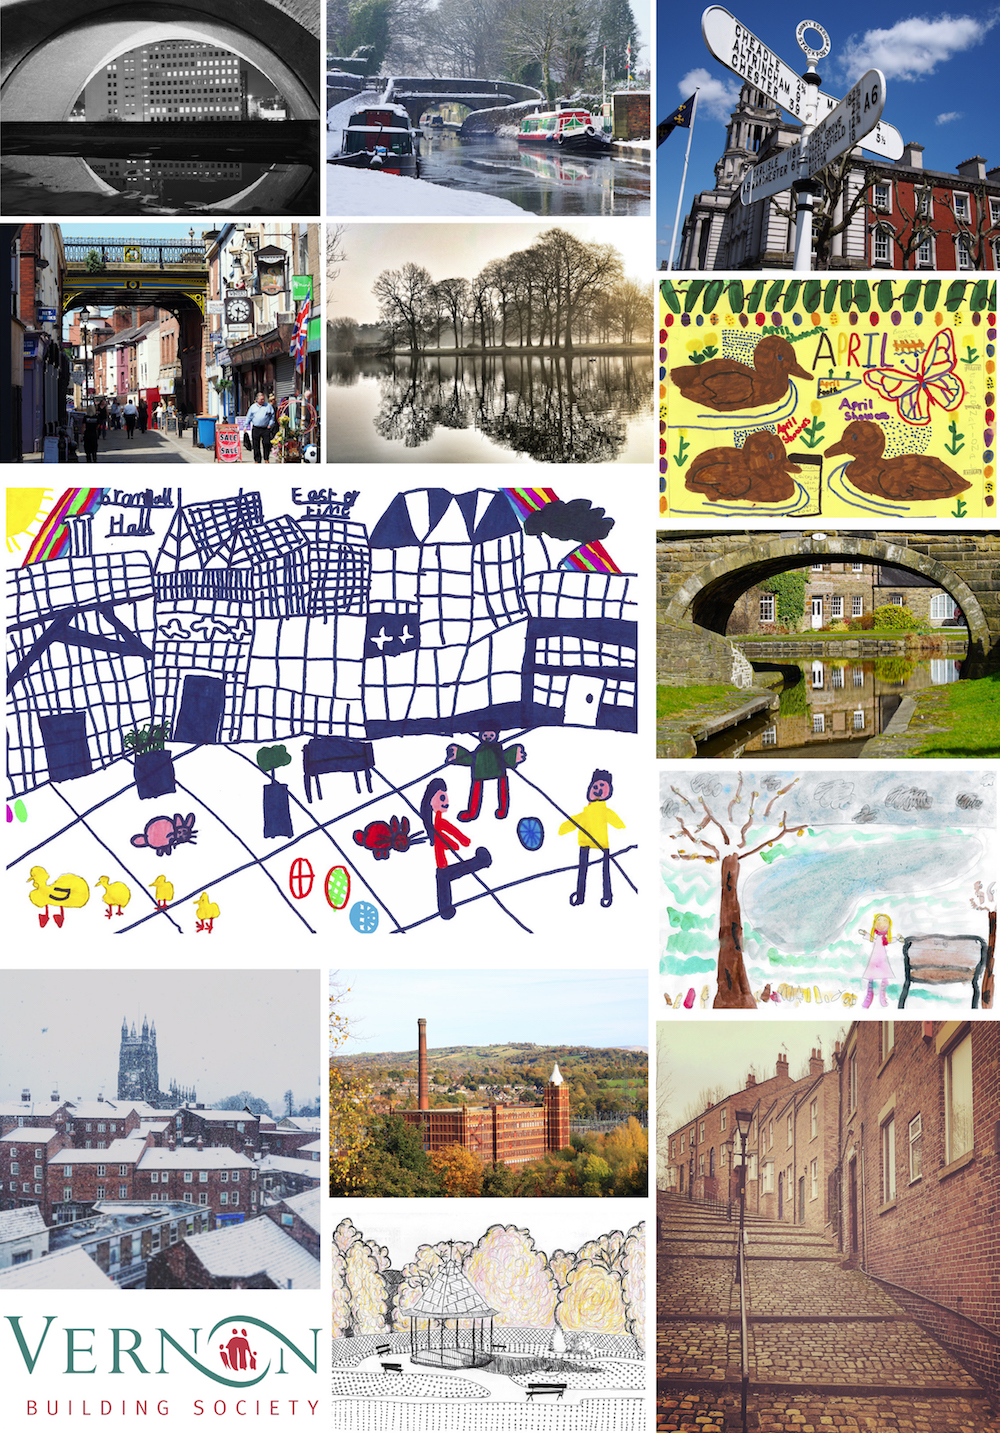 Stockport photographers wanted for Vernon calendar